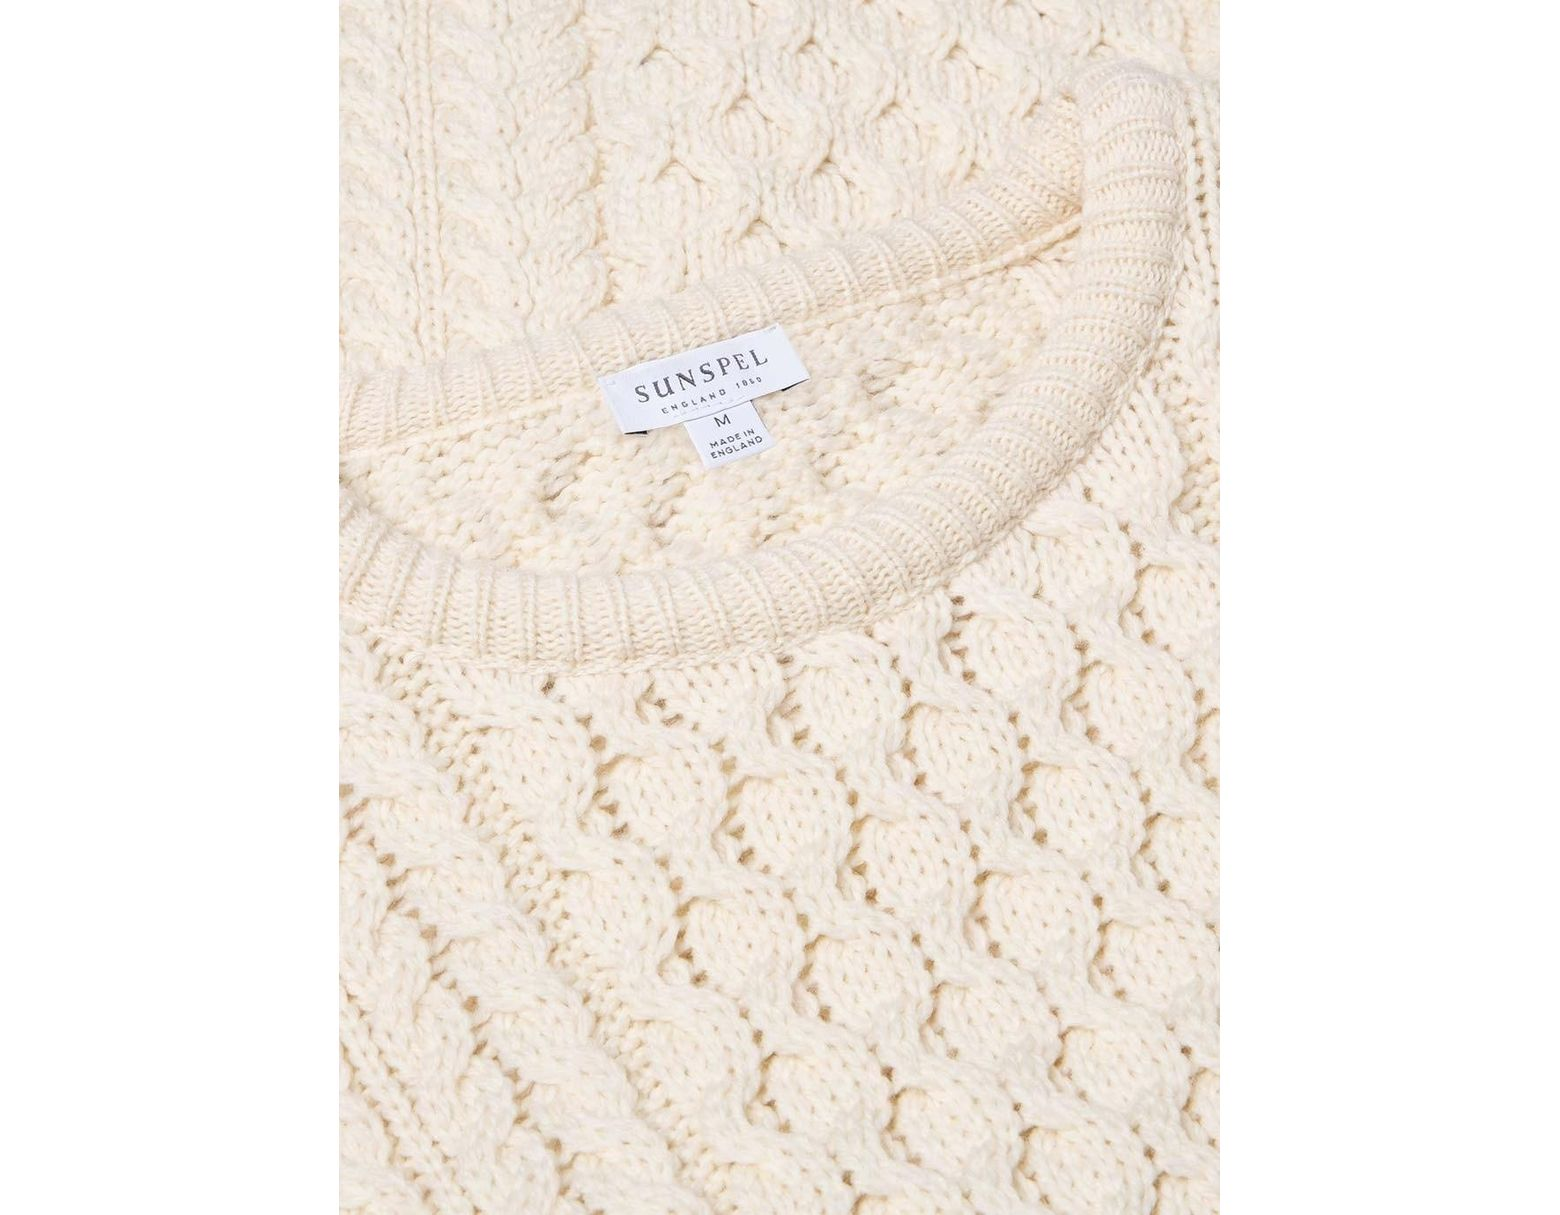 6deeadcd4bc3b7 Sunspel Men's Merino Wool Cable Knit Jumper In Archive White in White for  Men - Save 2% - Lyst